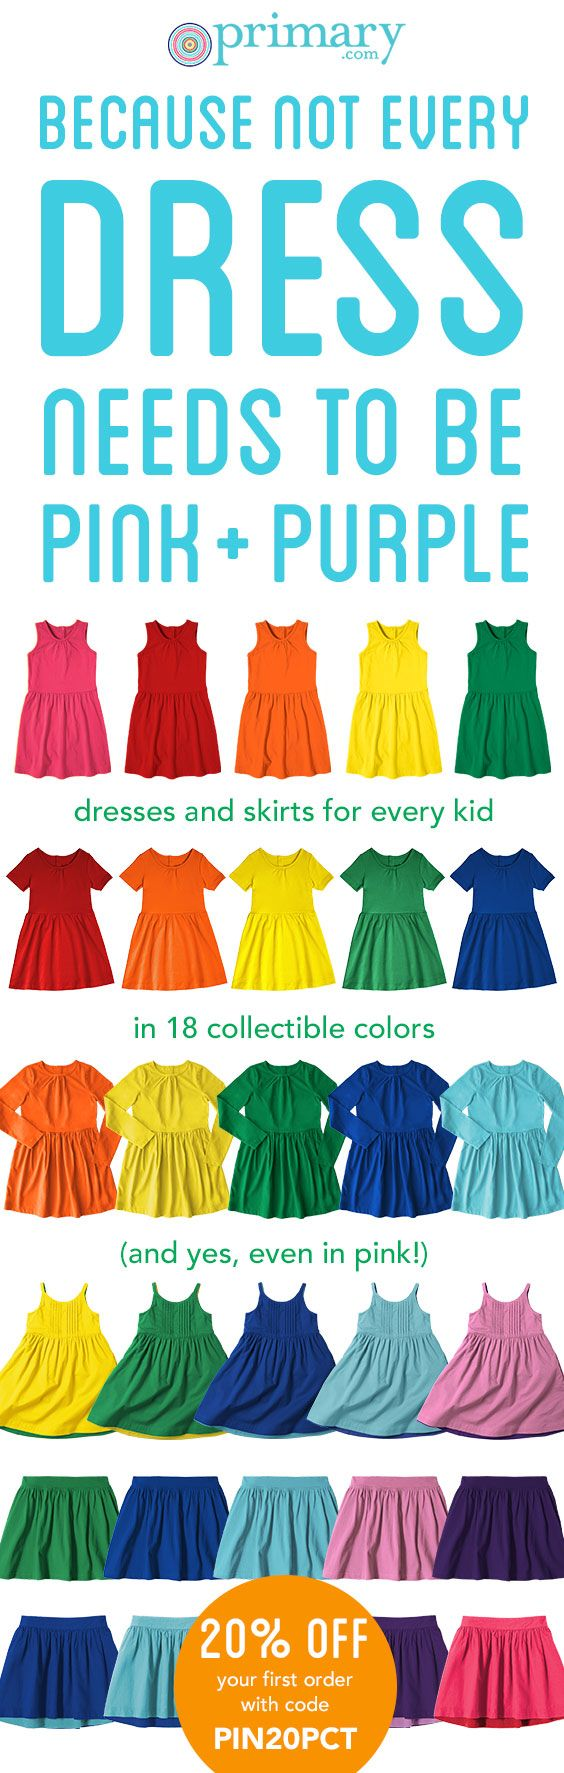 Say hello to comfortable colorful cotton dresses and skirts by Primary in a rainbow of colors and featuring reversible styles and pockets! (Because every dress and skirt should have pockets!) New friends get 20% off a first order with code PIN20PCT and free shipping always!